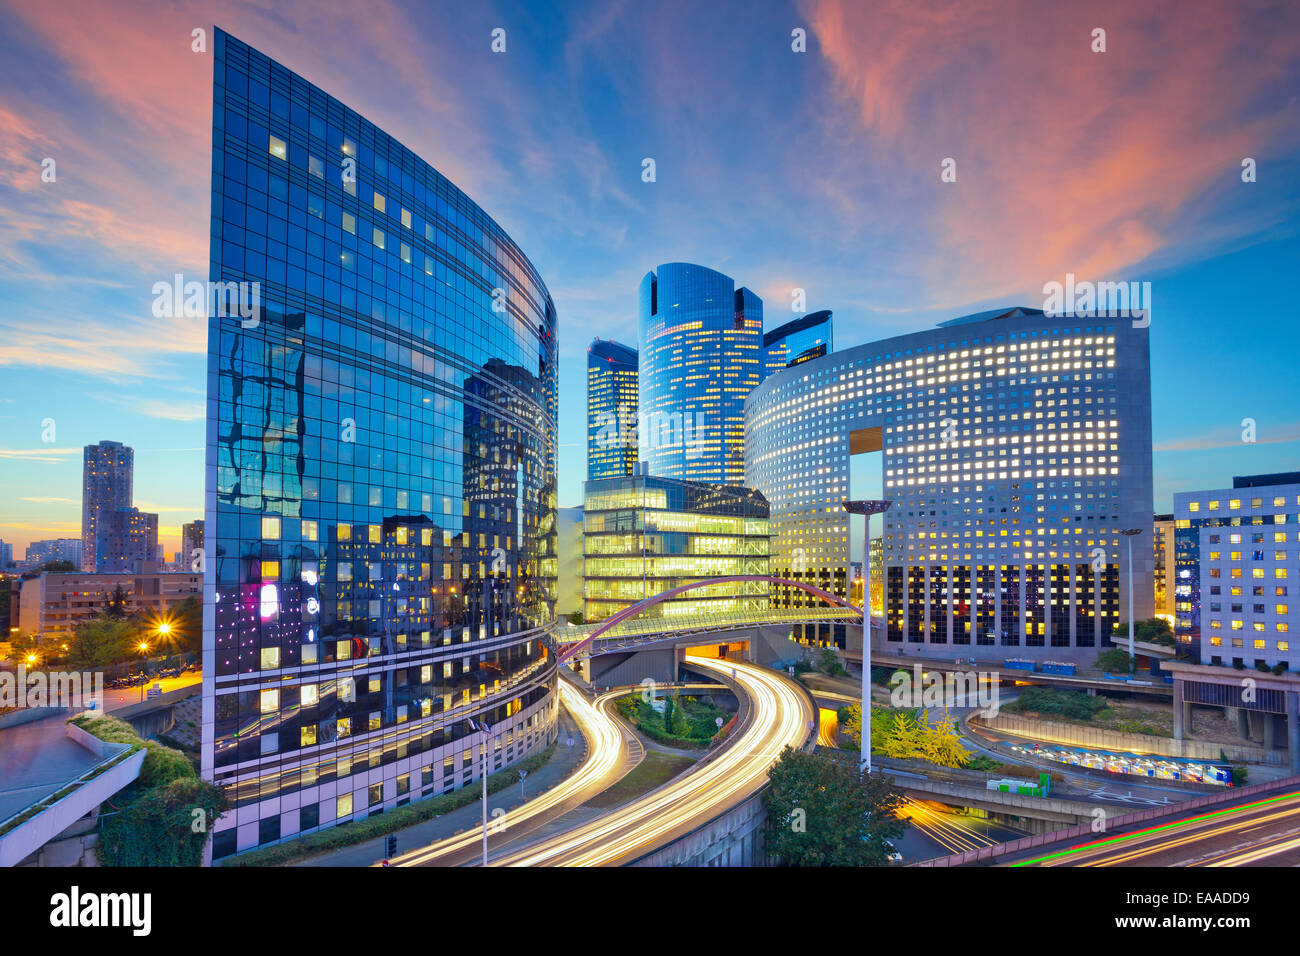 Image of office buildings in modern part of Paris- La Defense during sunset. - Stock Image